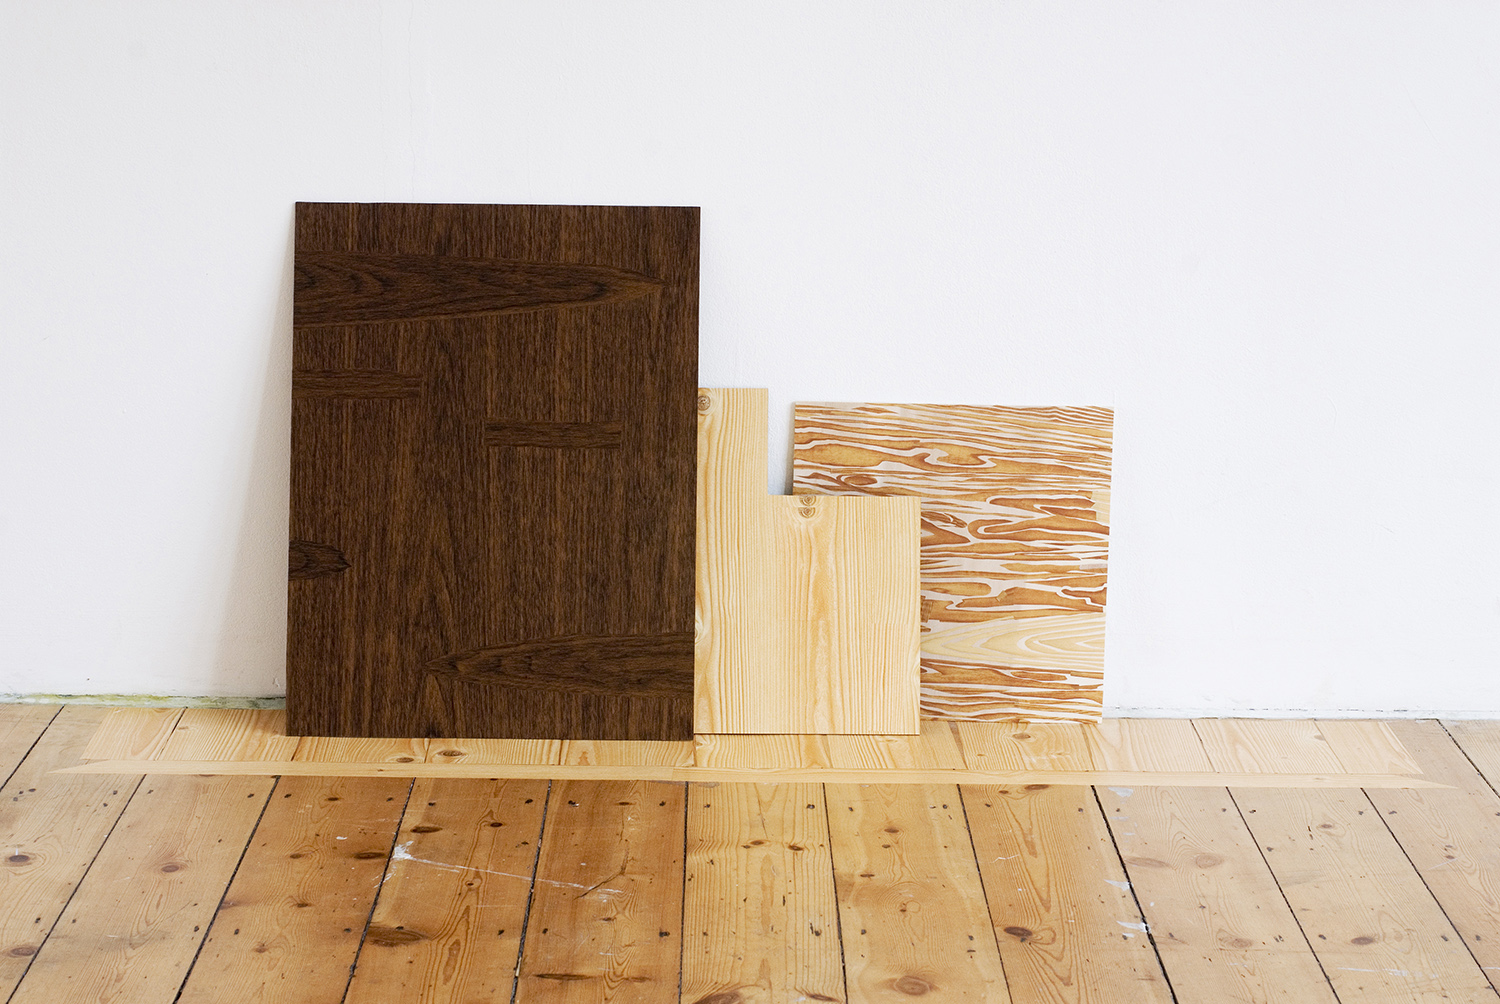 Masquetry IV , 2014 Adhesive vinyl on board, bass wood, and floor 90 x 40 cm / 35.4 x 15.7 inches